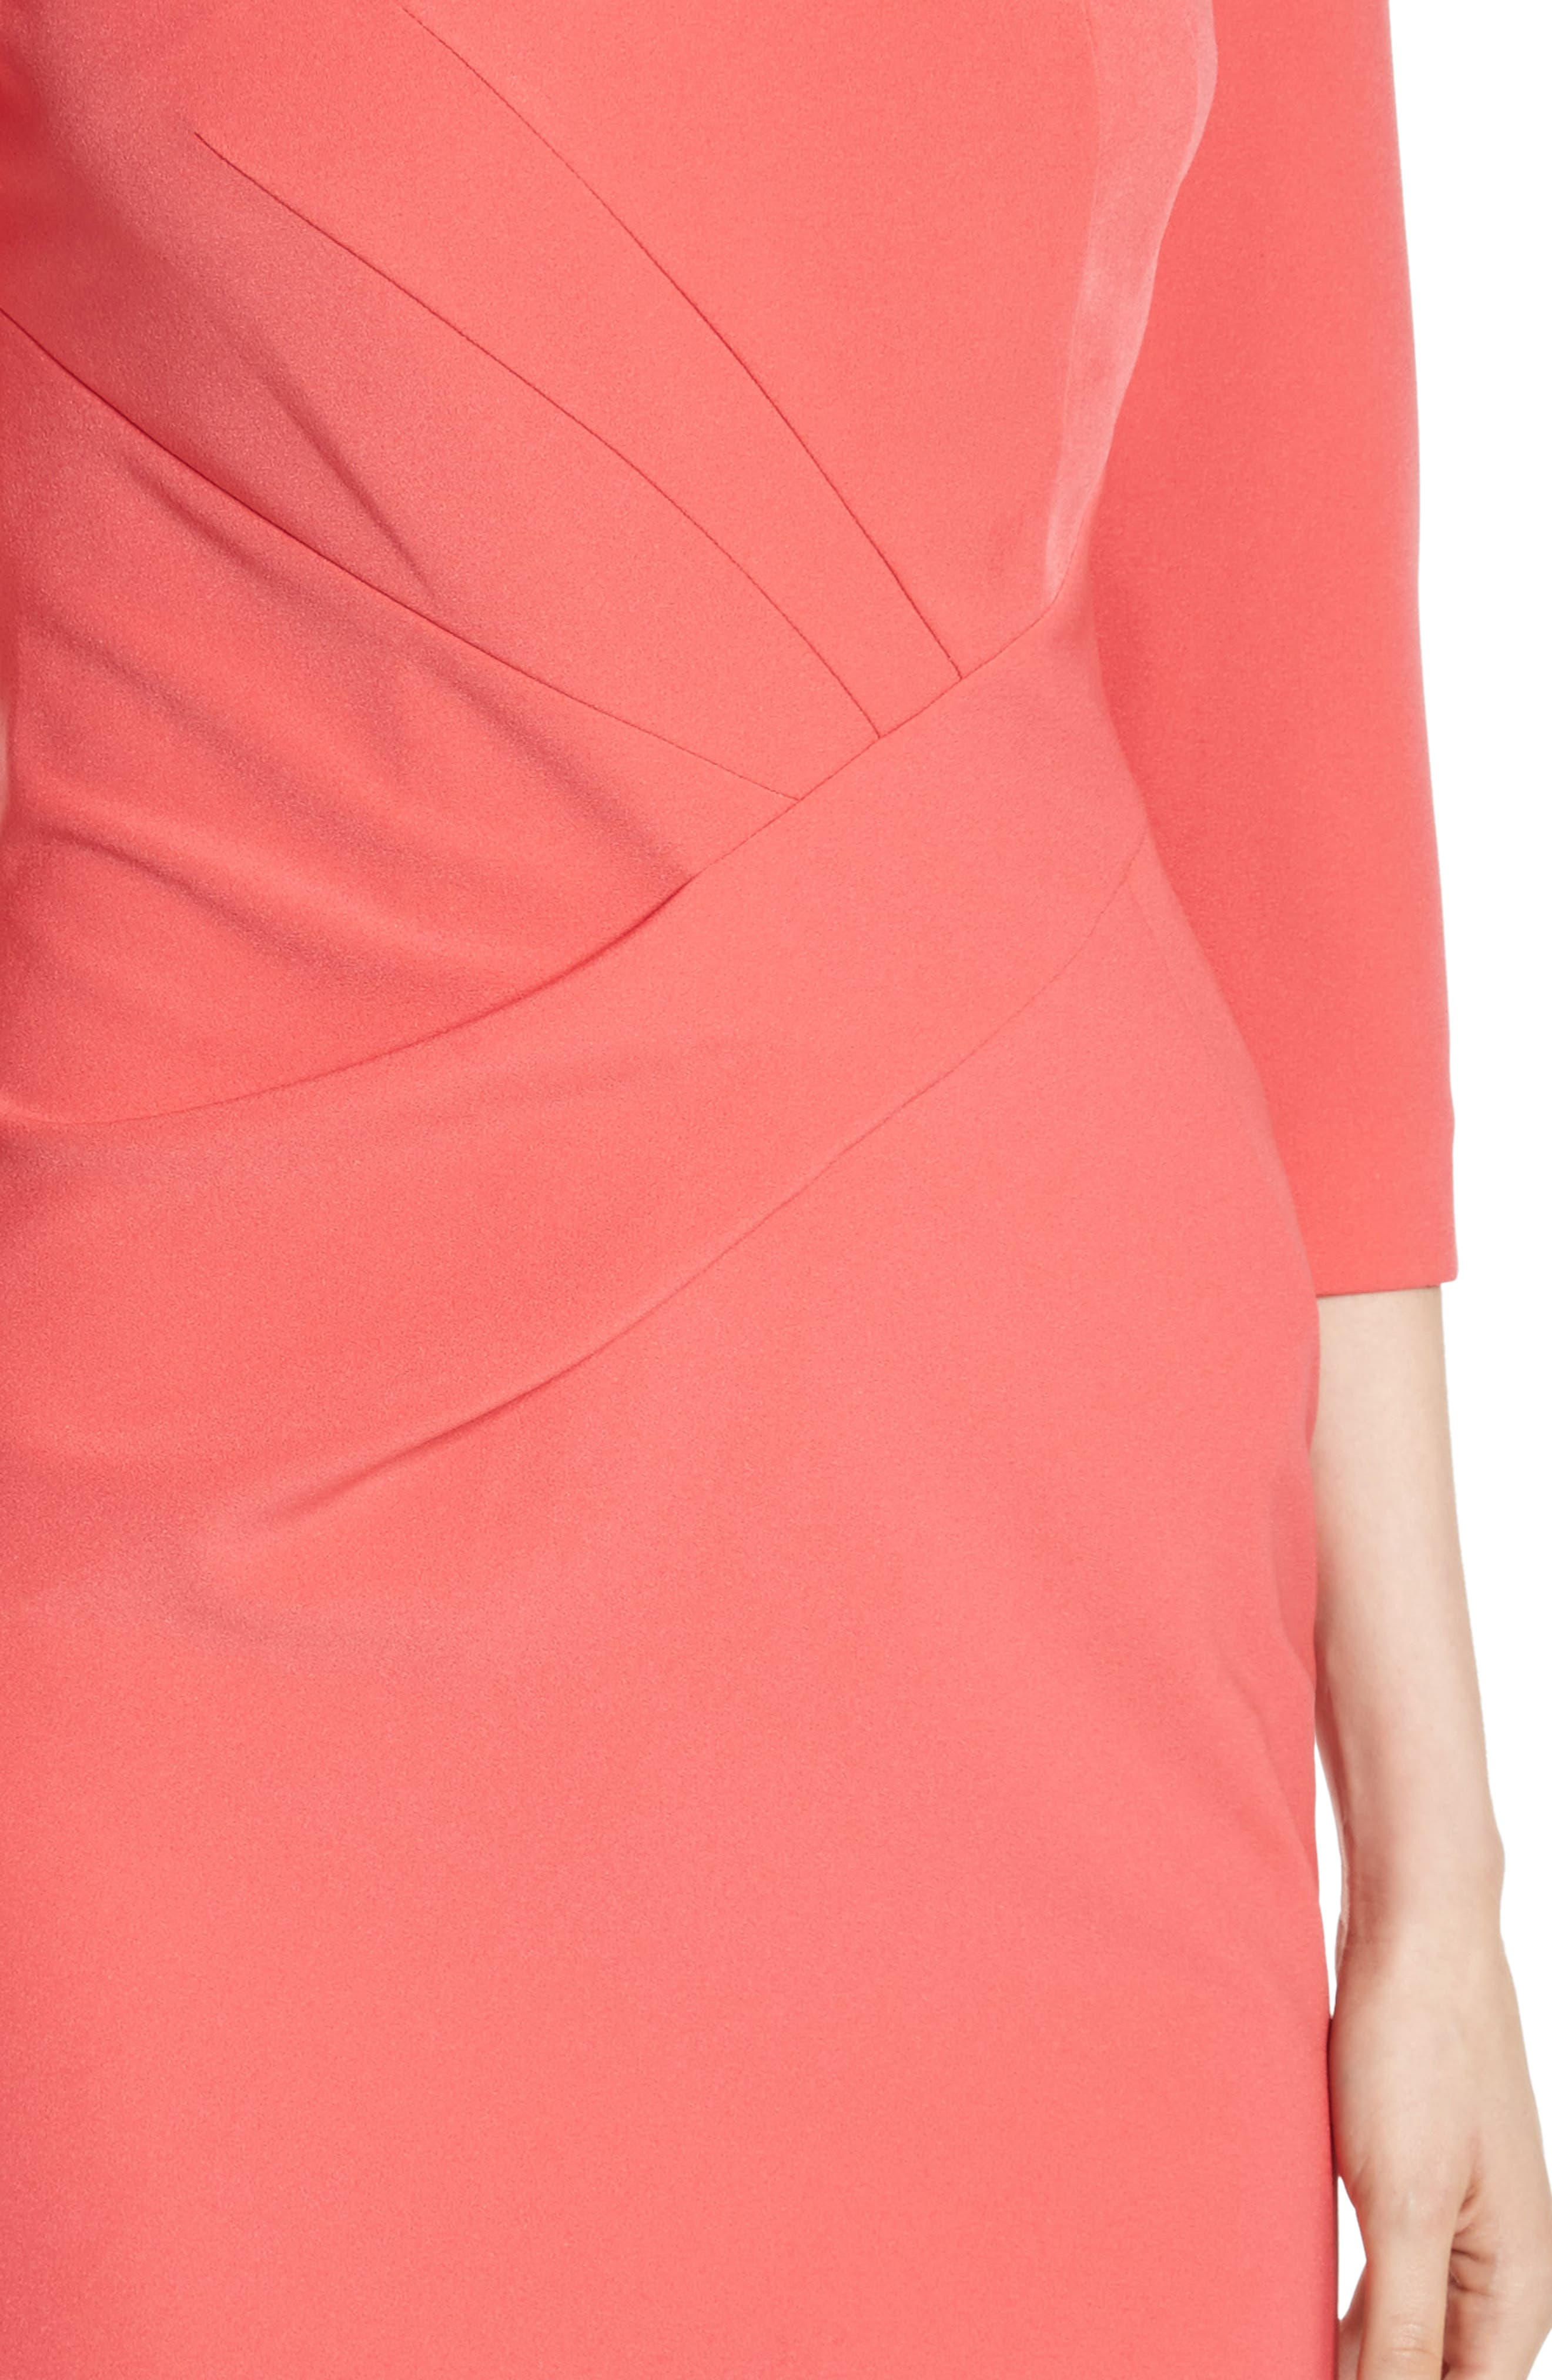 Stretch Crepe Dress,                             Alternate thumbnail 4, color,                             660